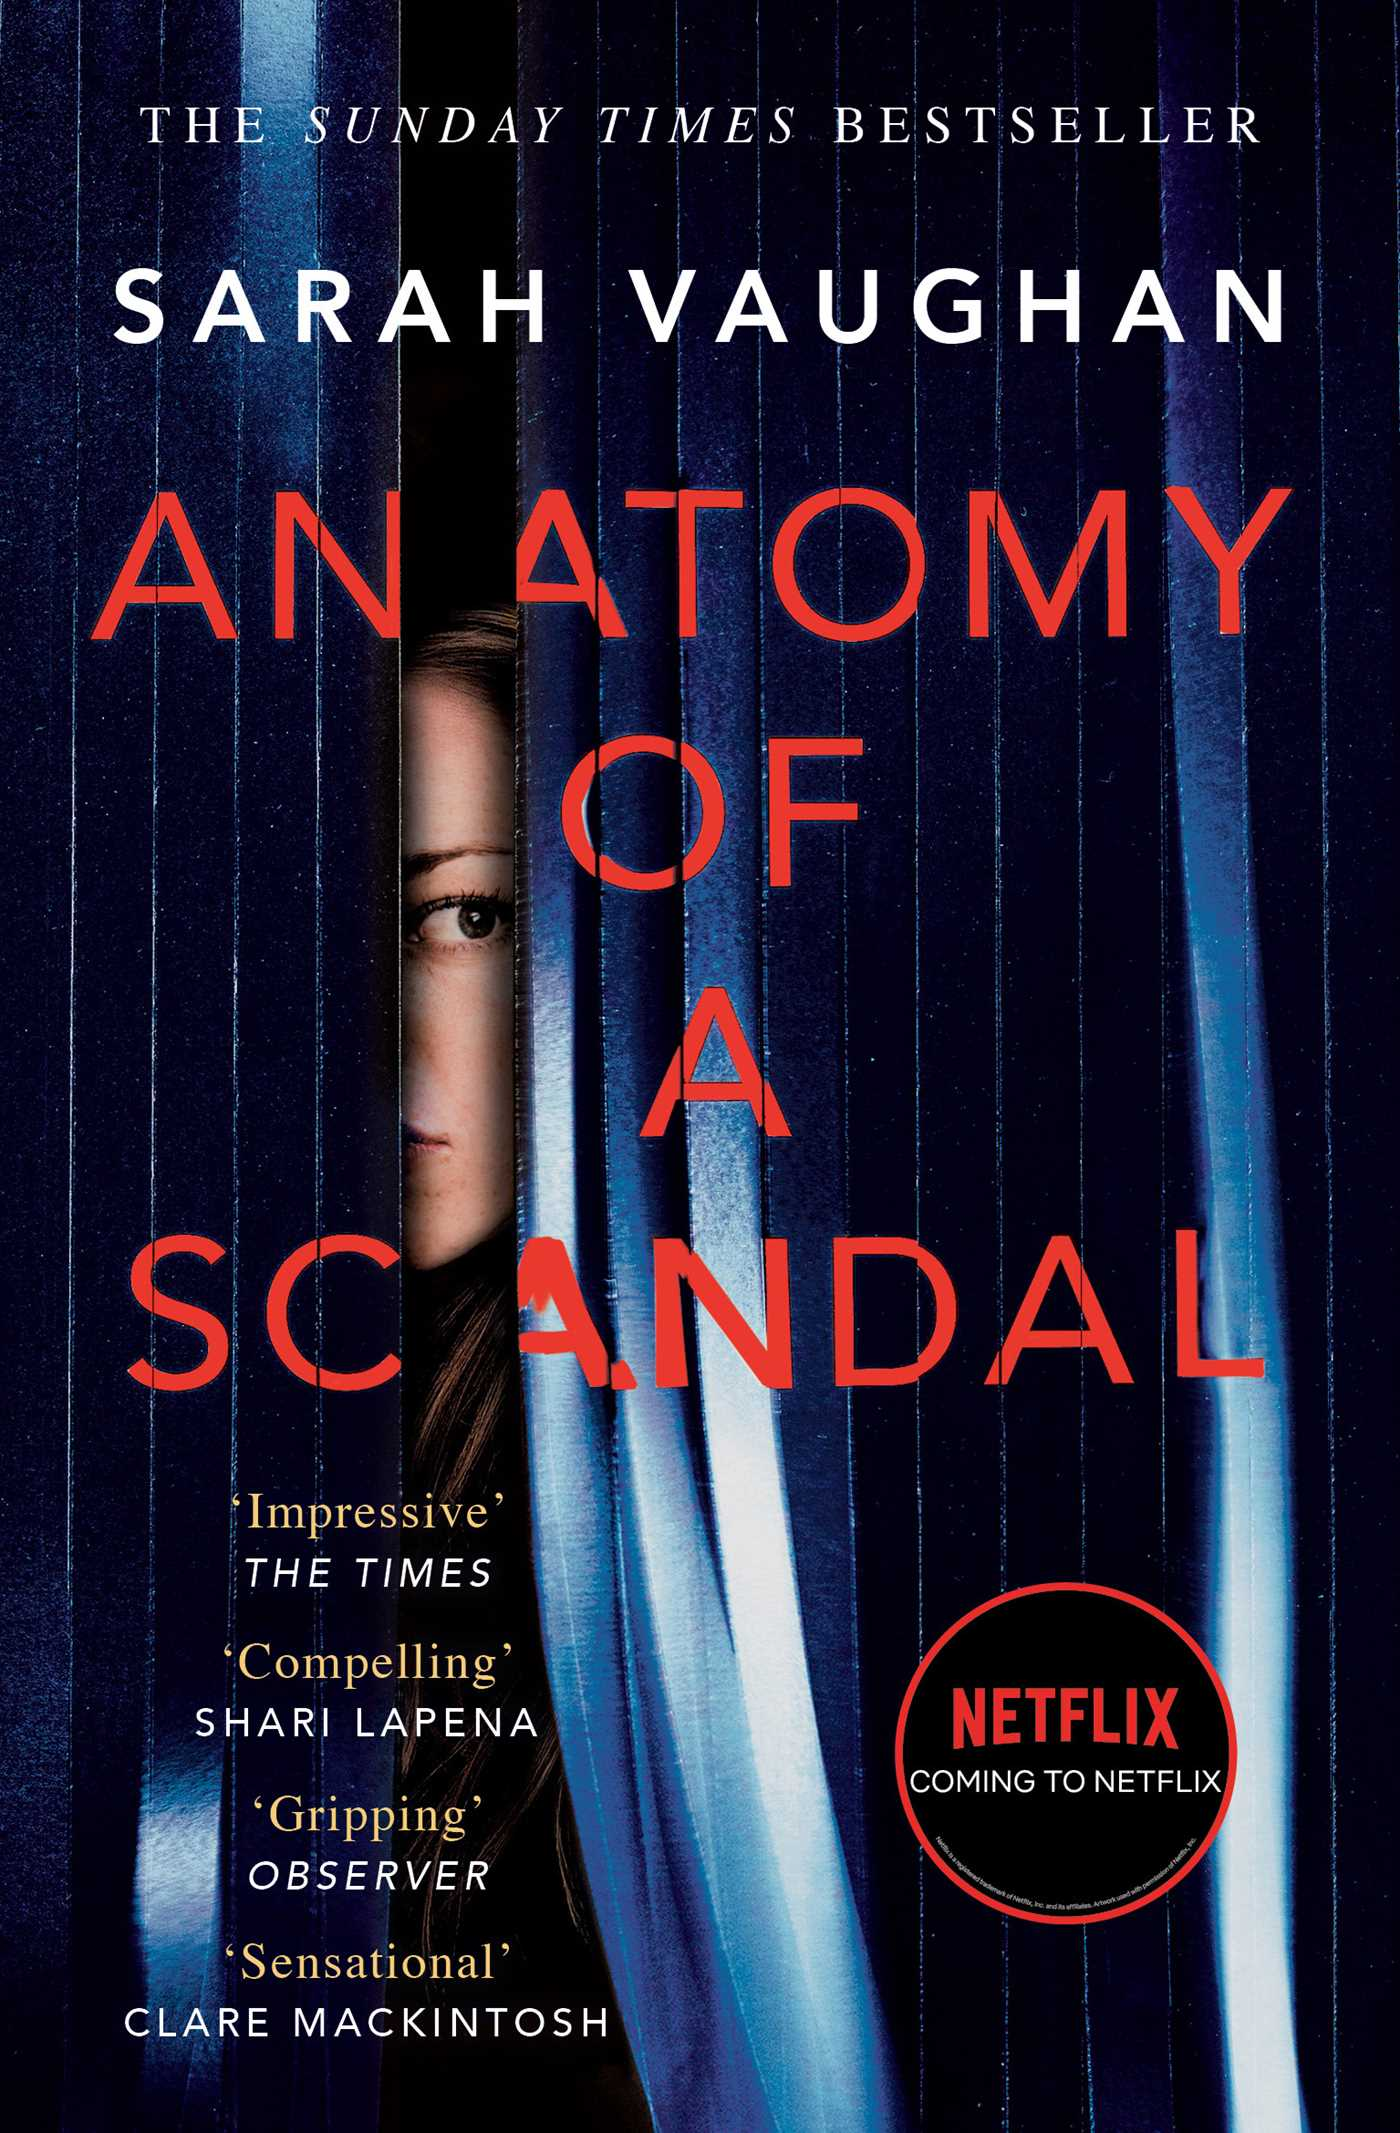 Anatomy of a scandal 9781471165023 hr